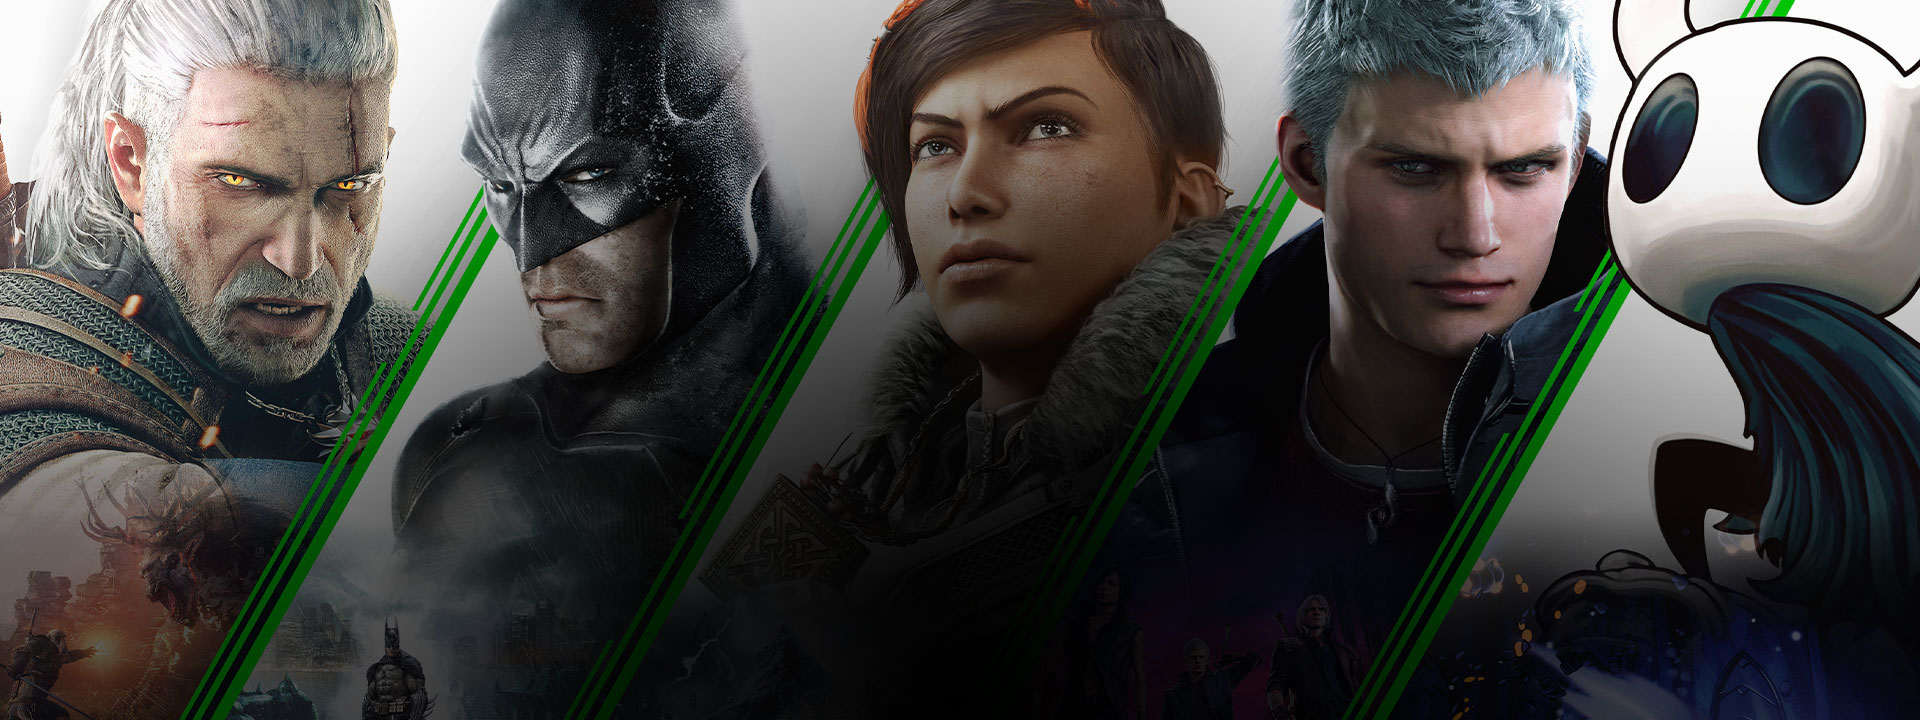 Kollázs az Xboxon rendelkezésre álló játékokból, köztük a következőkkel: The Witcher 3: Wild Hunt, Batman (Arkham Series), Gears 5, Devil May Cry 5, Hollow Knight.